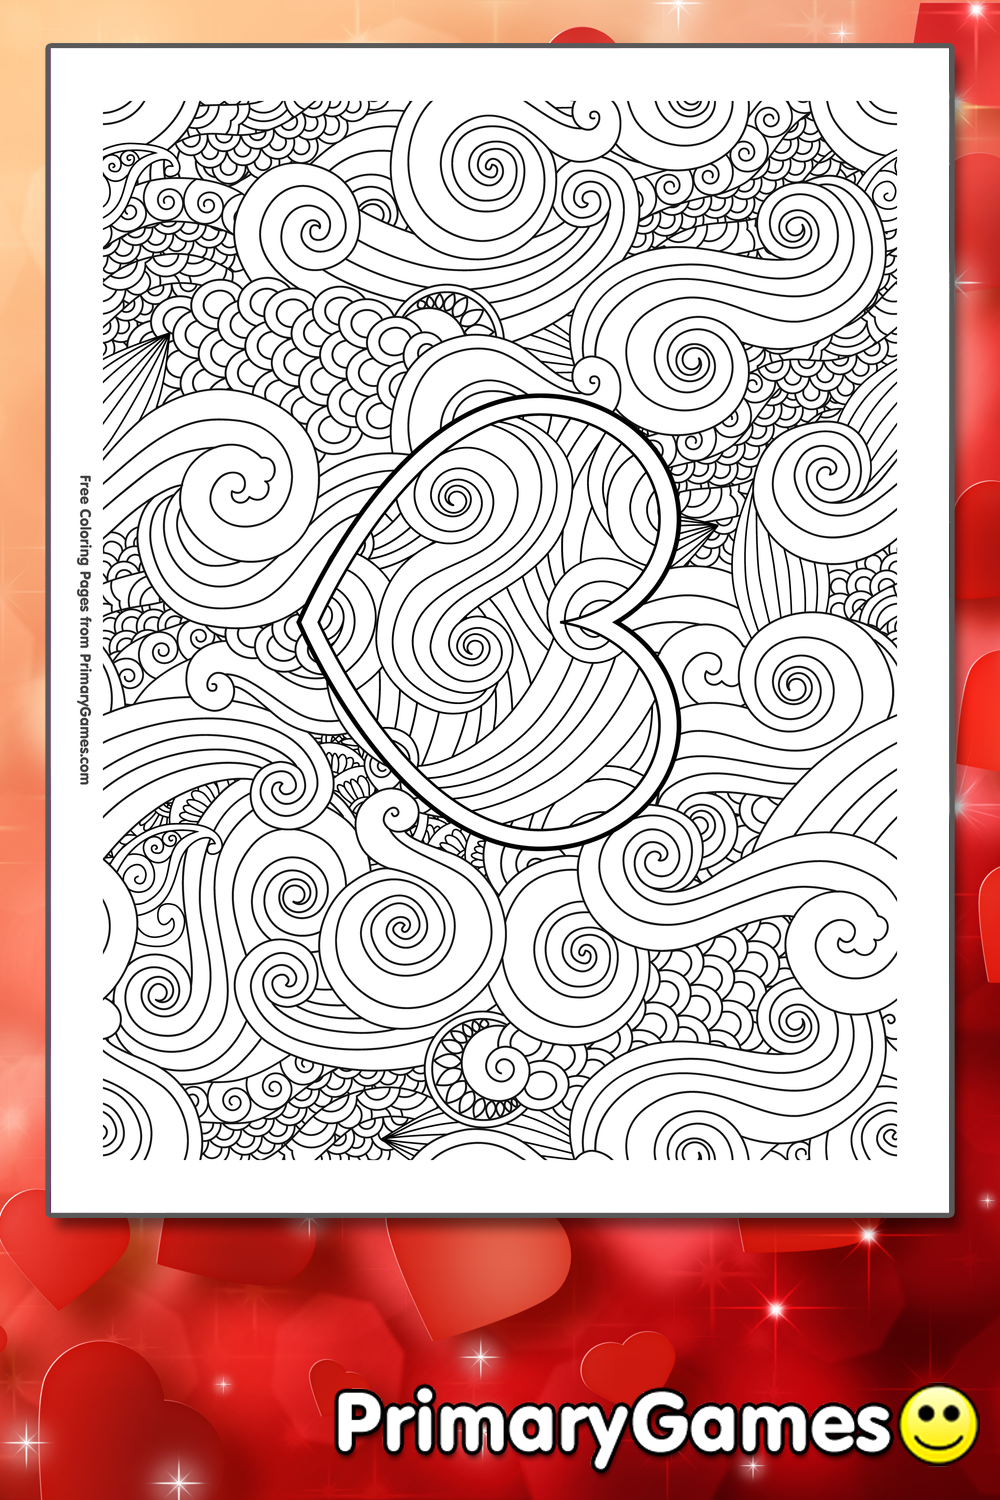 How To Draw Lily Pad Coloring Page moreover Garfield Coloring Book also Pla  Mars Holding A Sign Coloring Pages in addition Autumn Pumpkin Zentangle additionally Ant Working For The Lord Labor Day Activity Page. on labor day coloring page